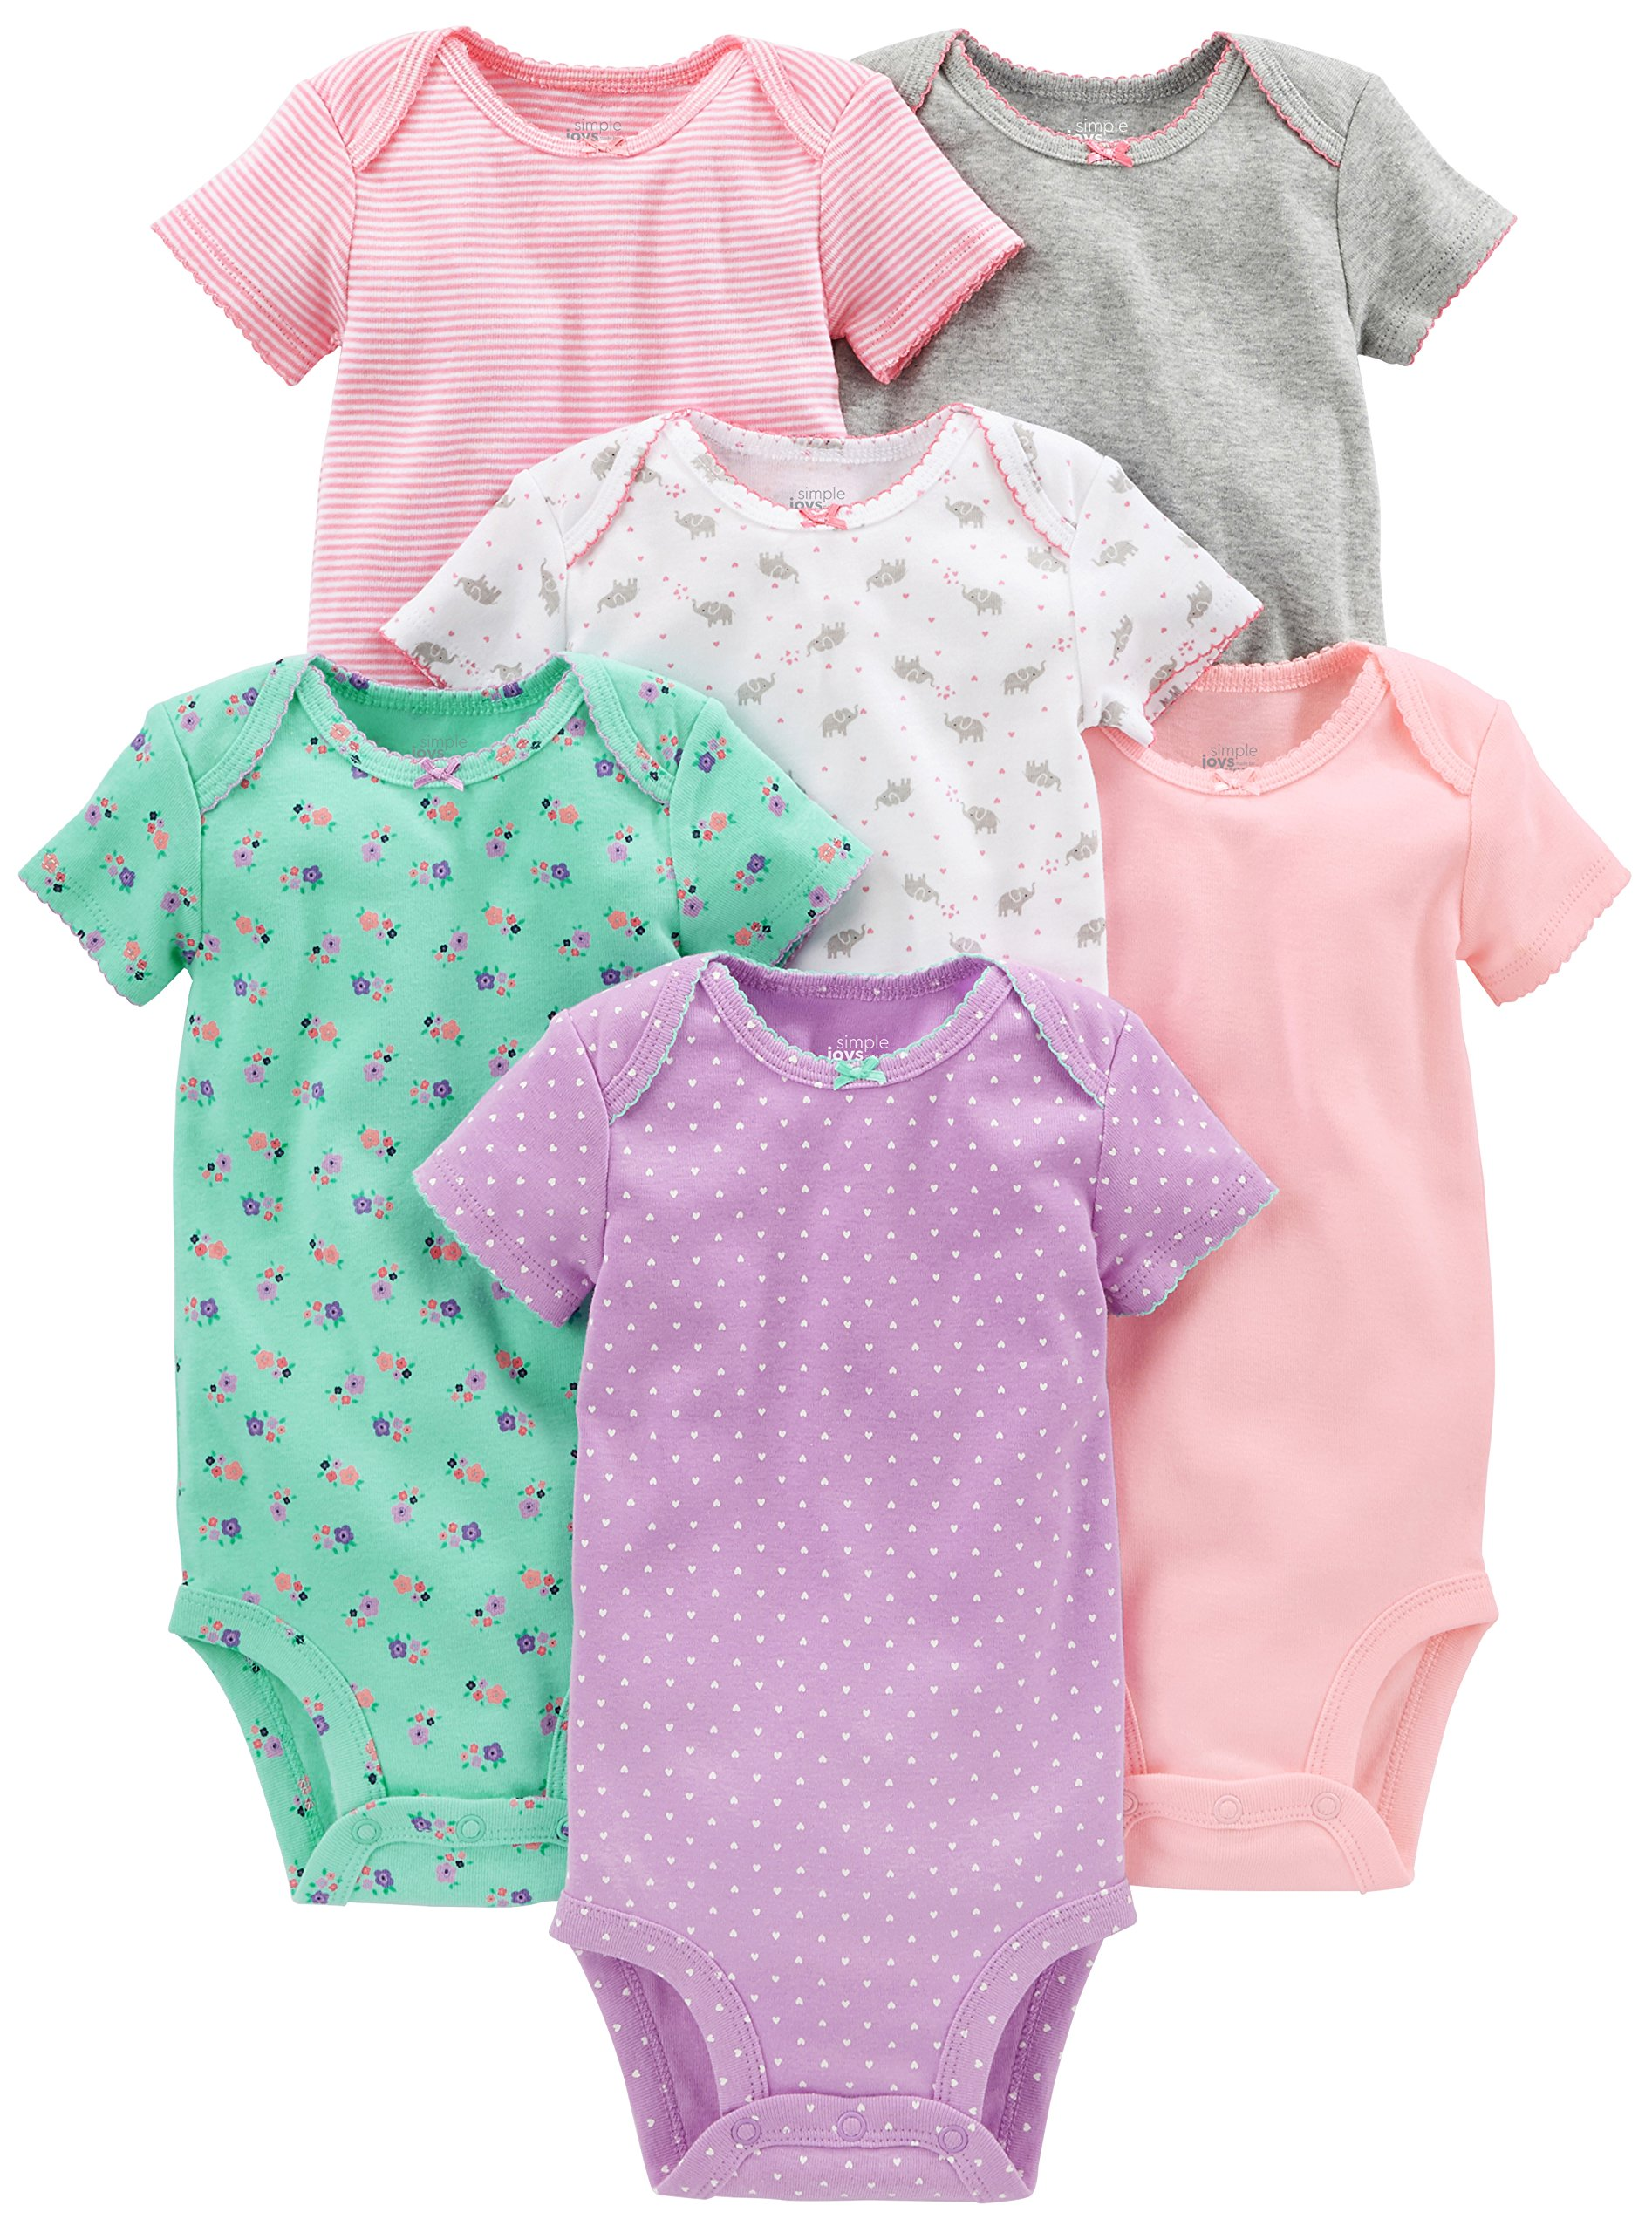 Best Rated in Baby Girls Clothing & Helpful Customer Reviews